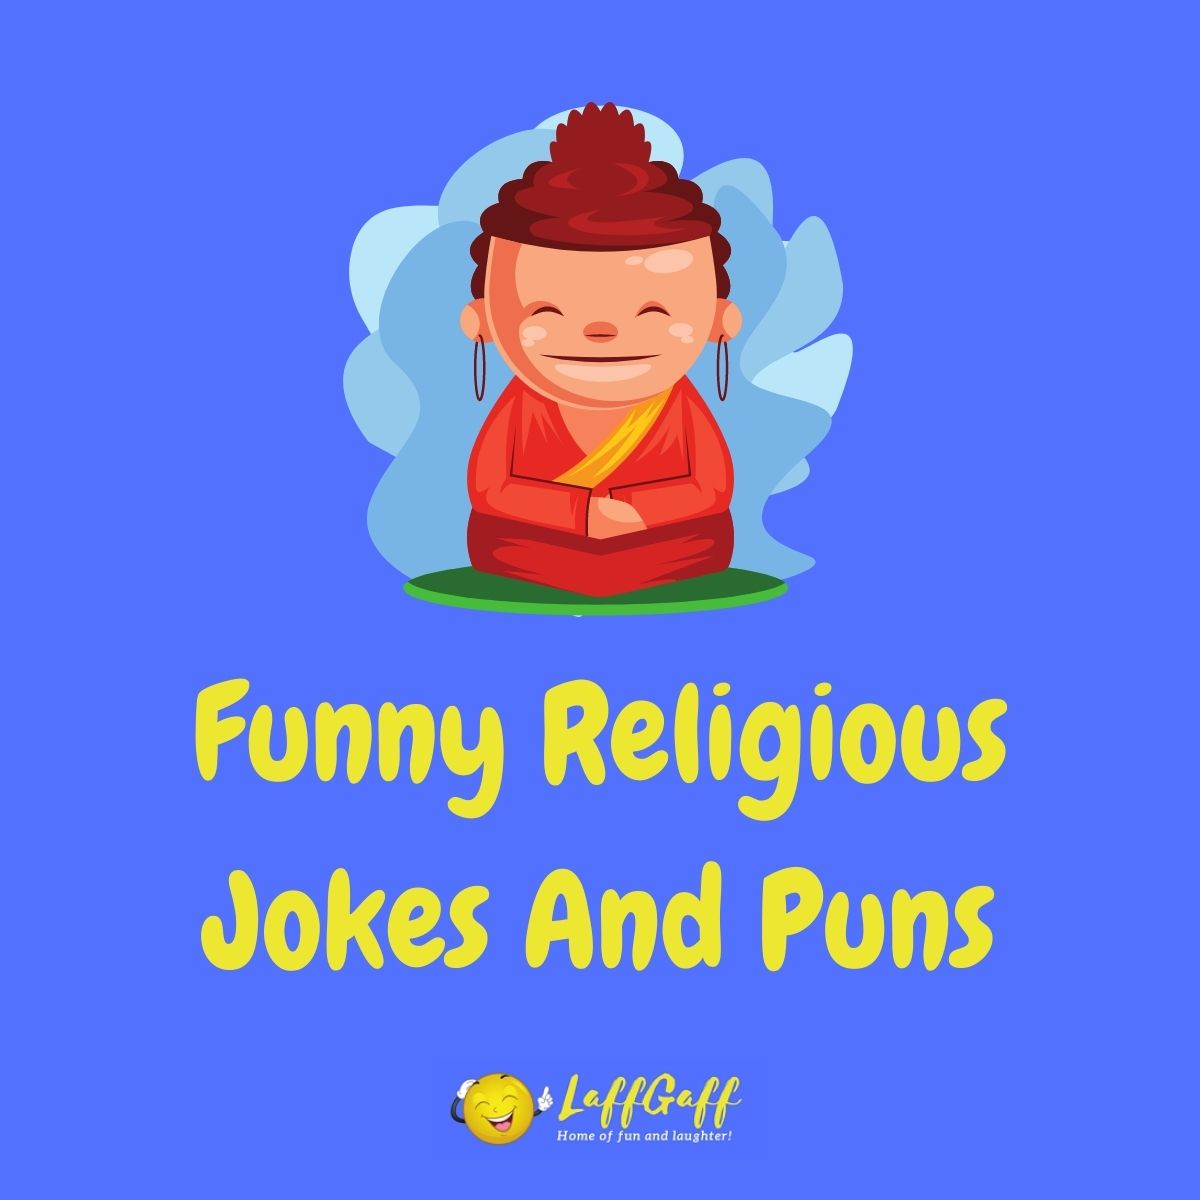 Featured image for a page of funny religious jokes and puns.